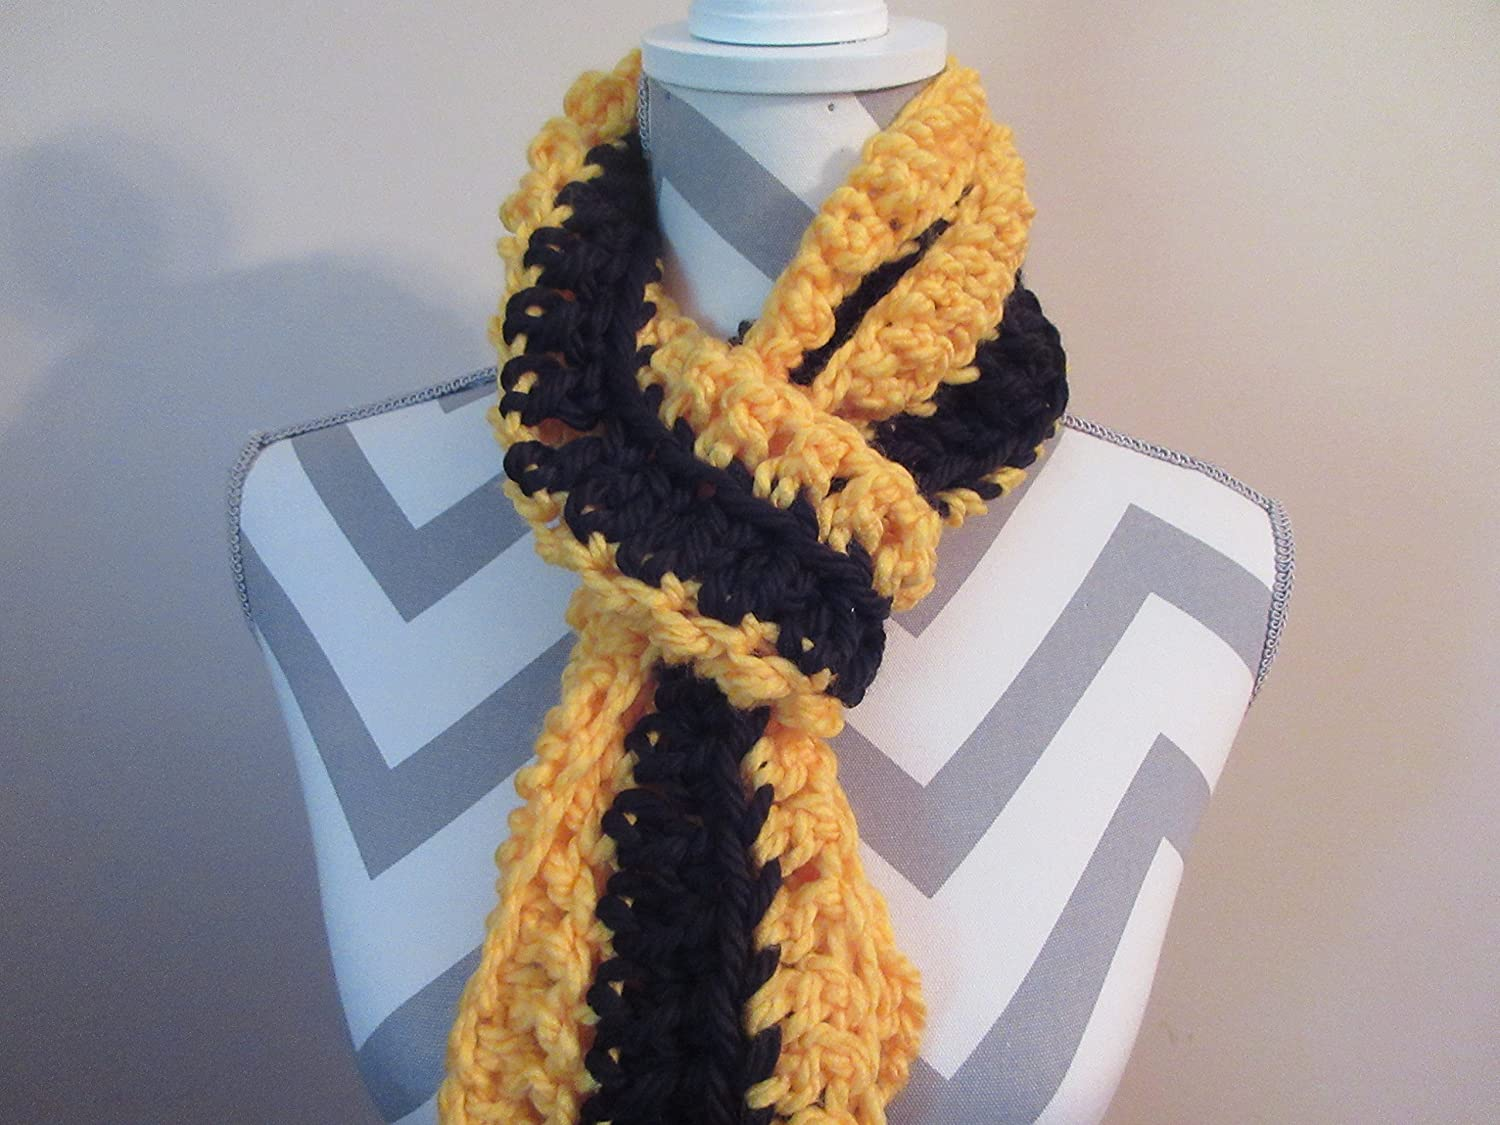 Handmade Crocheted Yellow Black Scarf Soft Chunky Long Boho Scarf Shawl by Ladies Fashion Design One Size Fits All Gift for Her Gift Bag and Ribbon Included